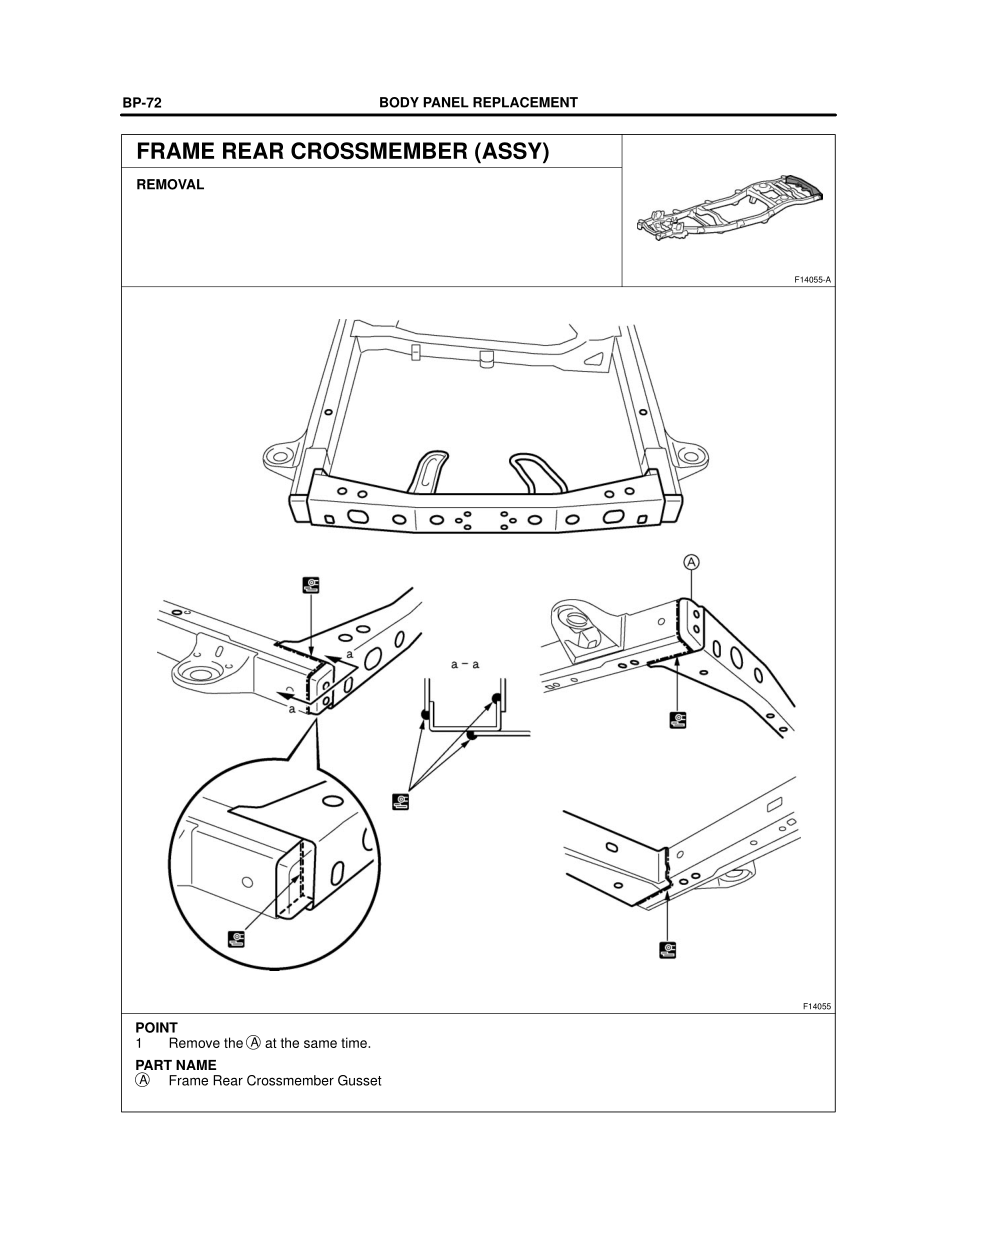 2003-2008 TOYOTA 4Runner Repair Manual, Frame Rear